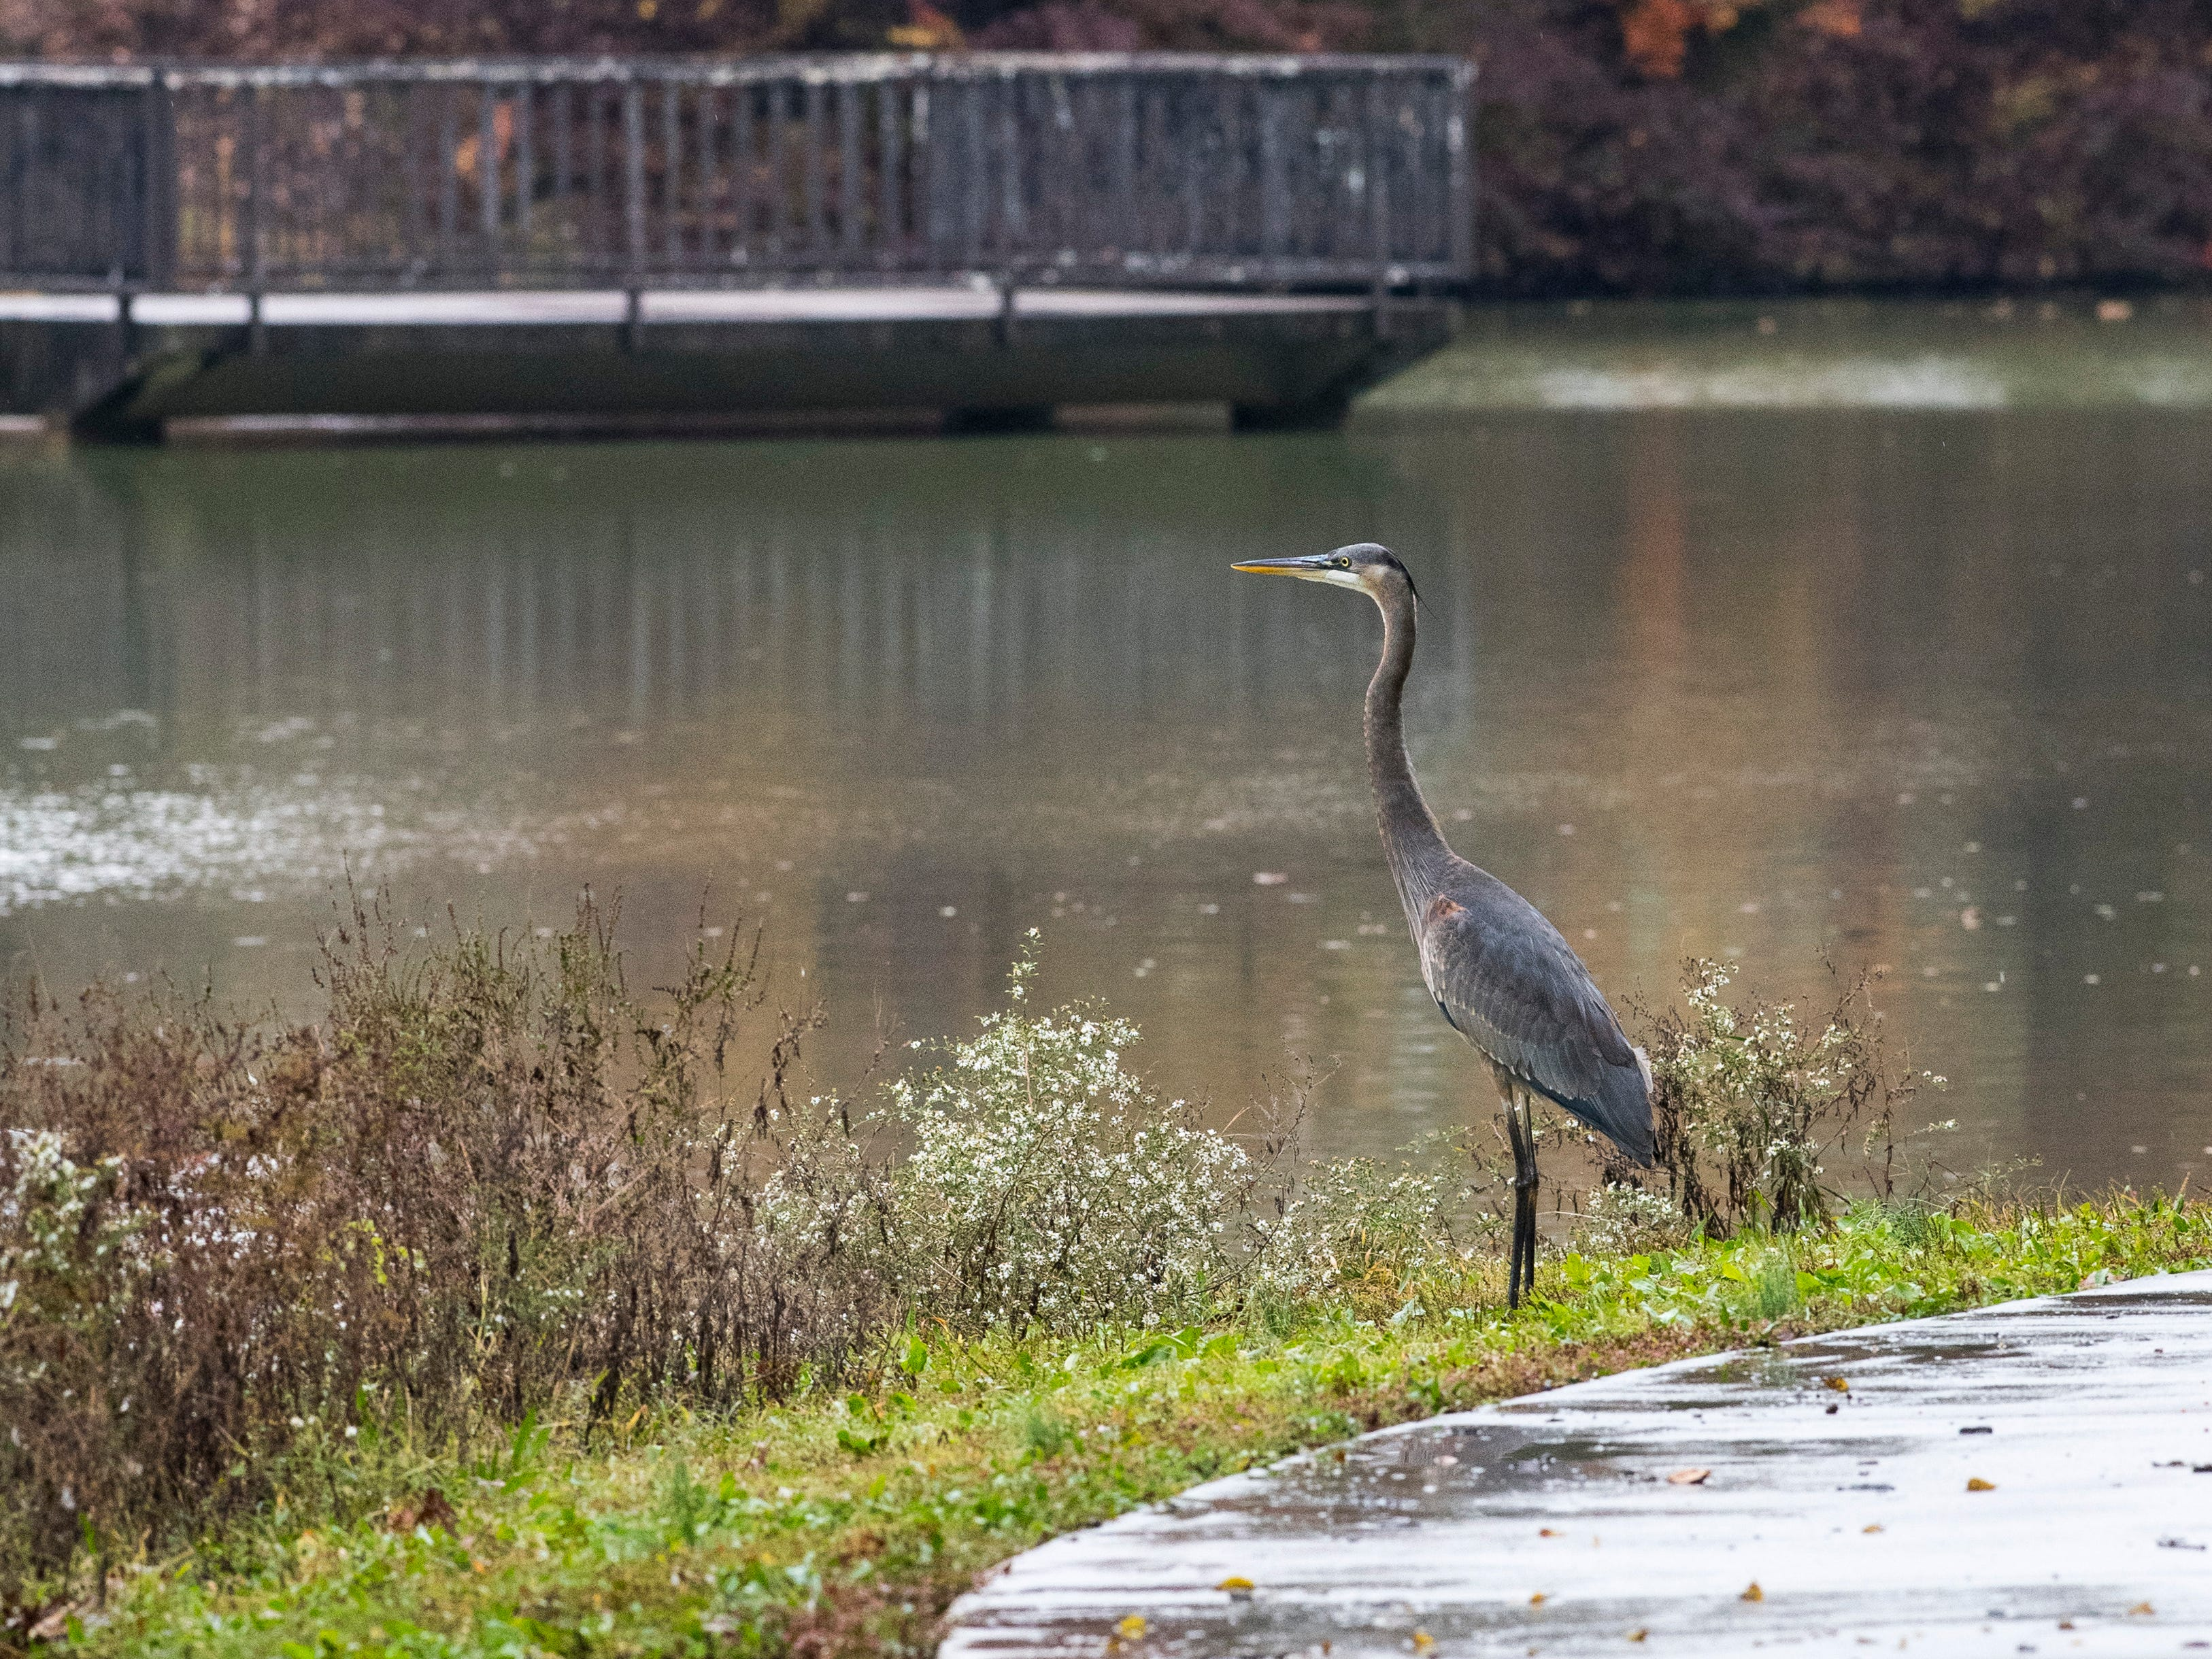 A Great Blue Heron stands on the edge of Evansmeer Lake in Garvin Park Wednesday morning Oct. 31, 2018.